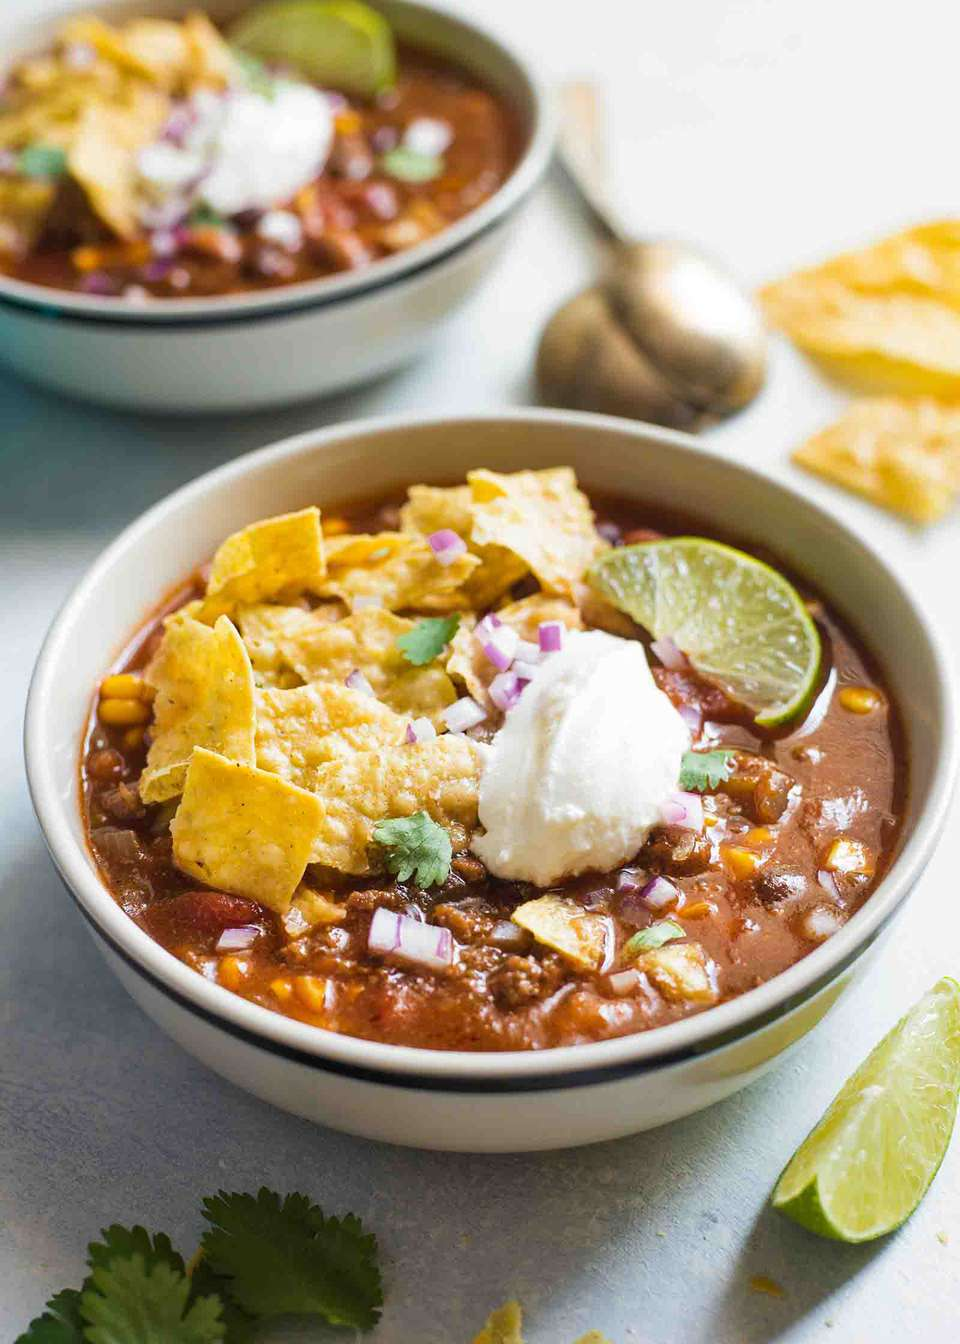 Crockpot taco soup made with beans, ground beef, beans, and corn, and topped with tortilla chips, sour cream, and lime wedges.